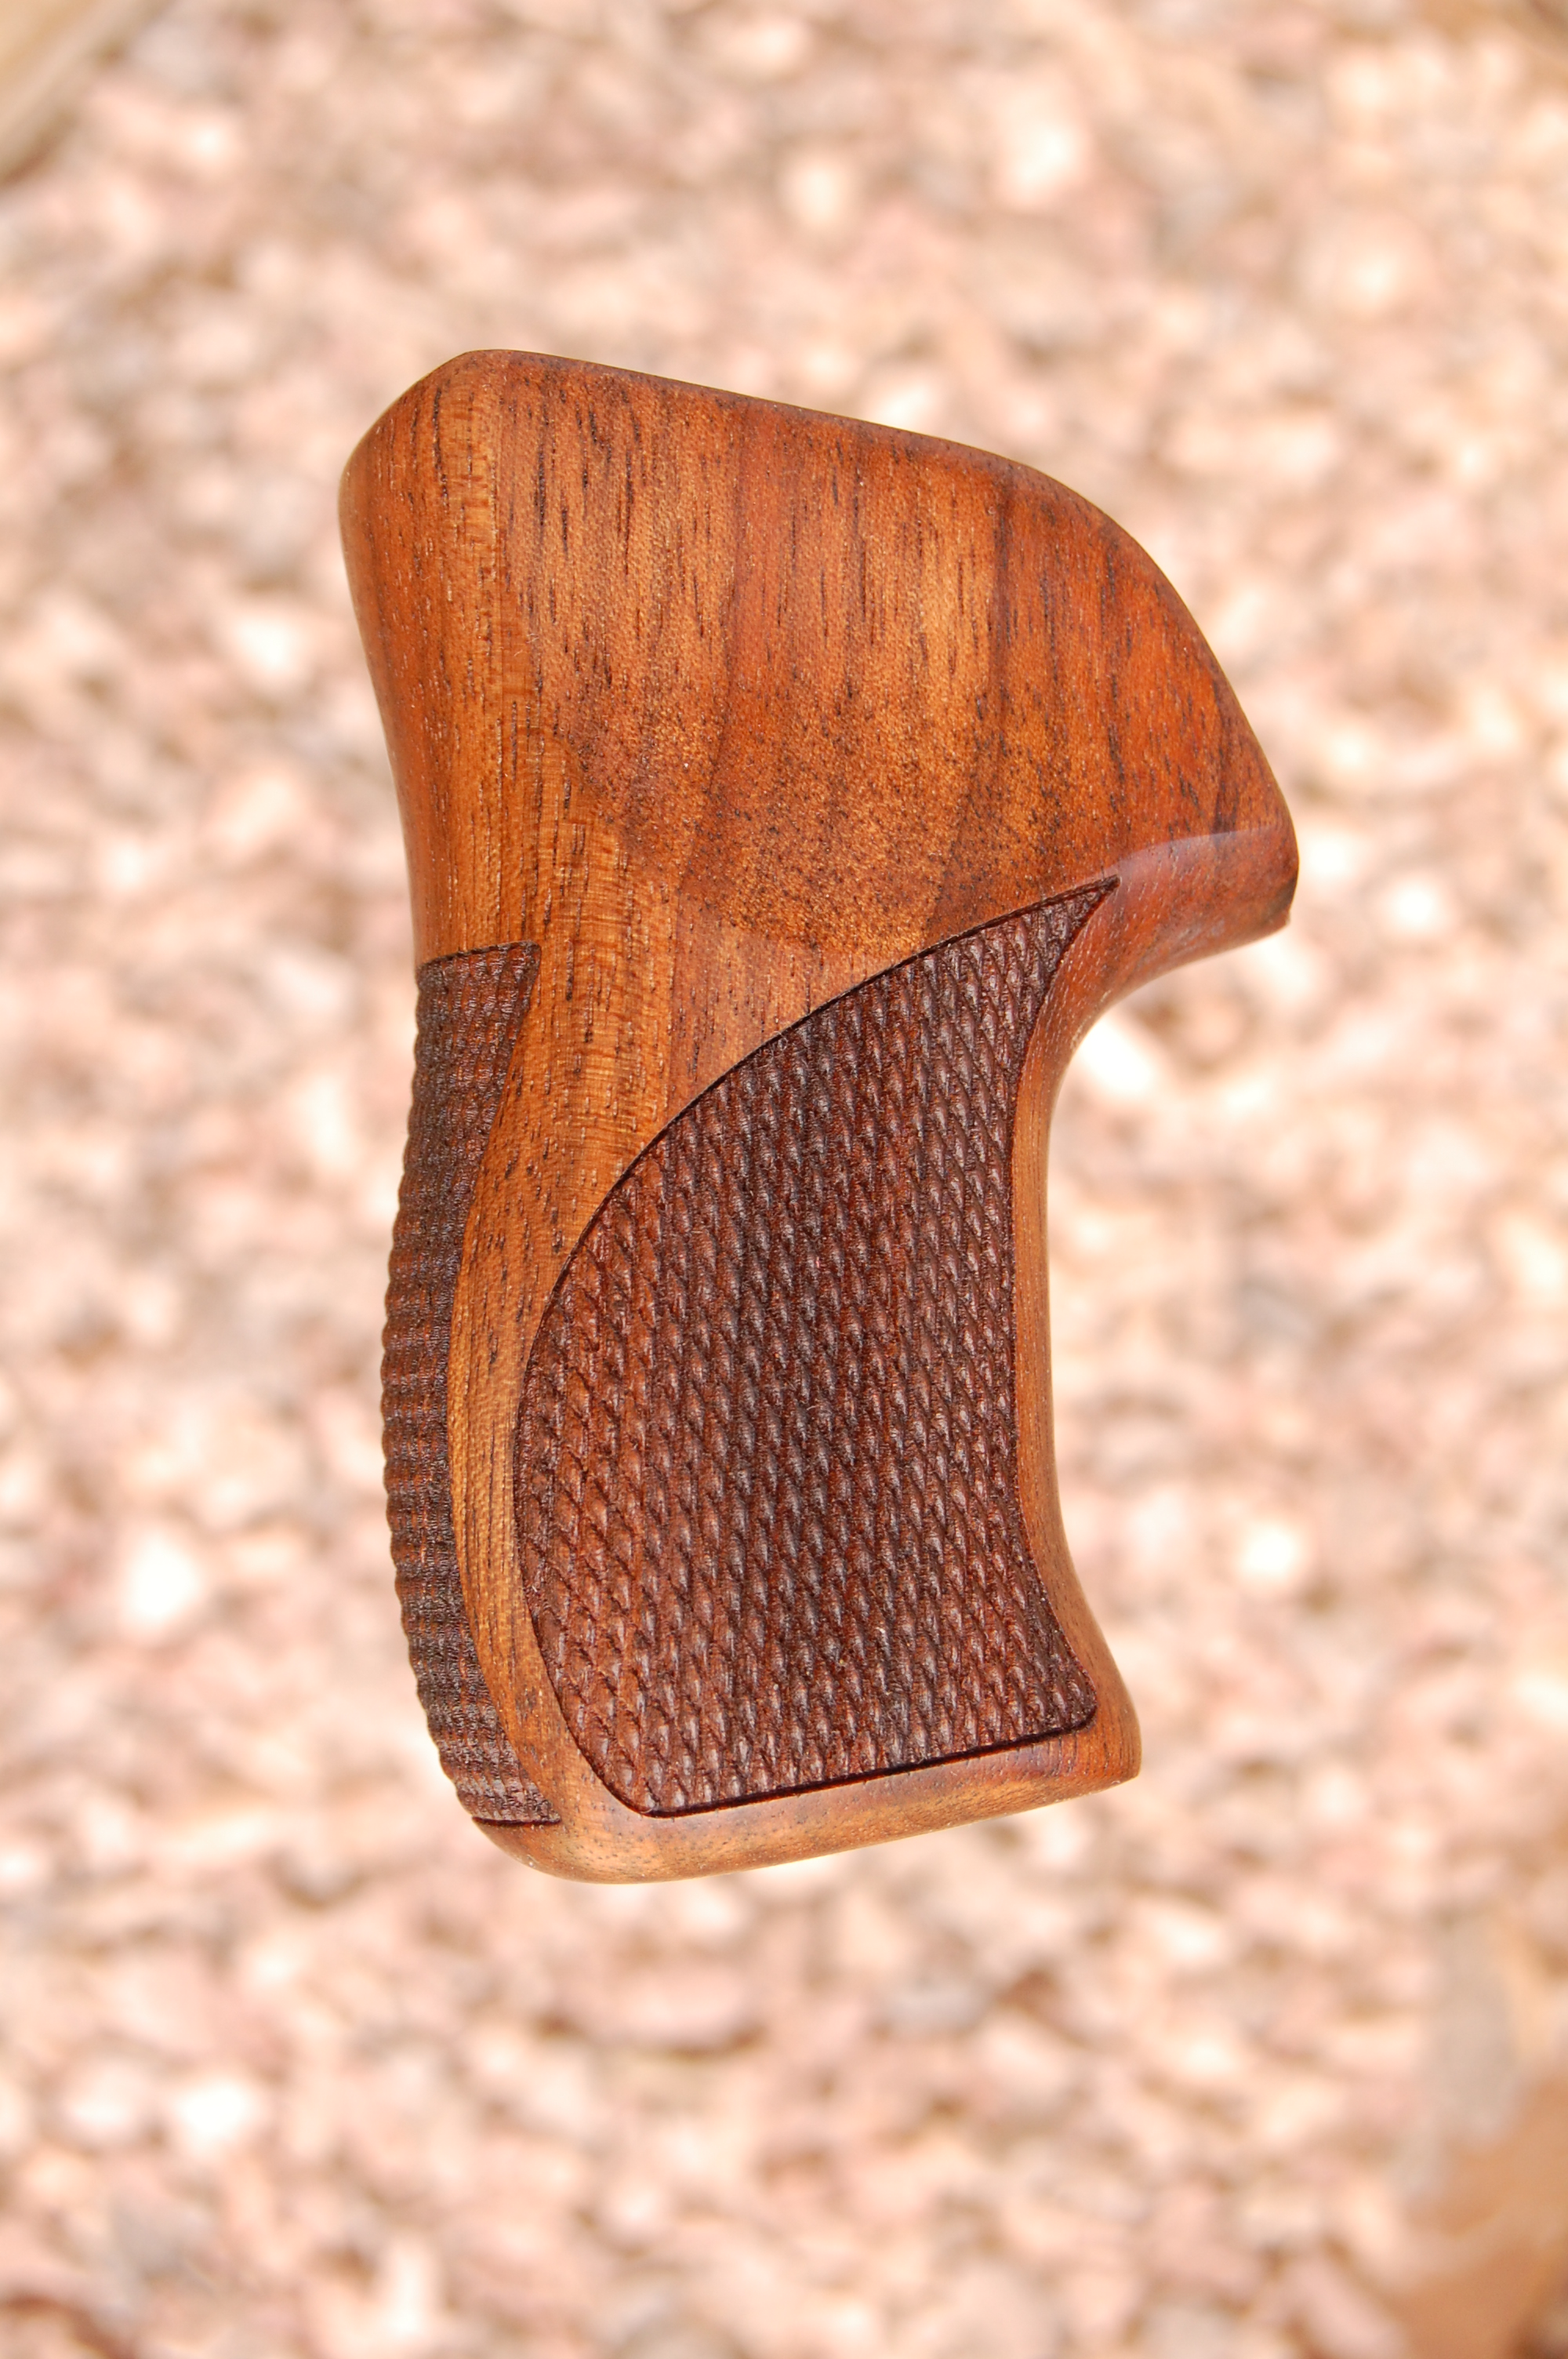 RUGER LCR grip (checkered back) - full size